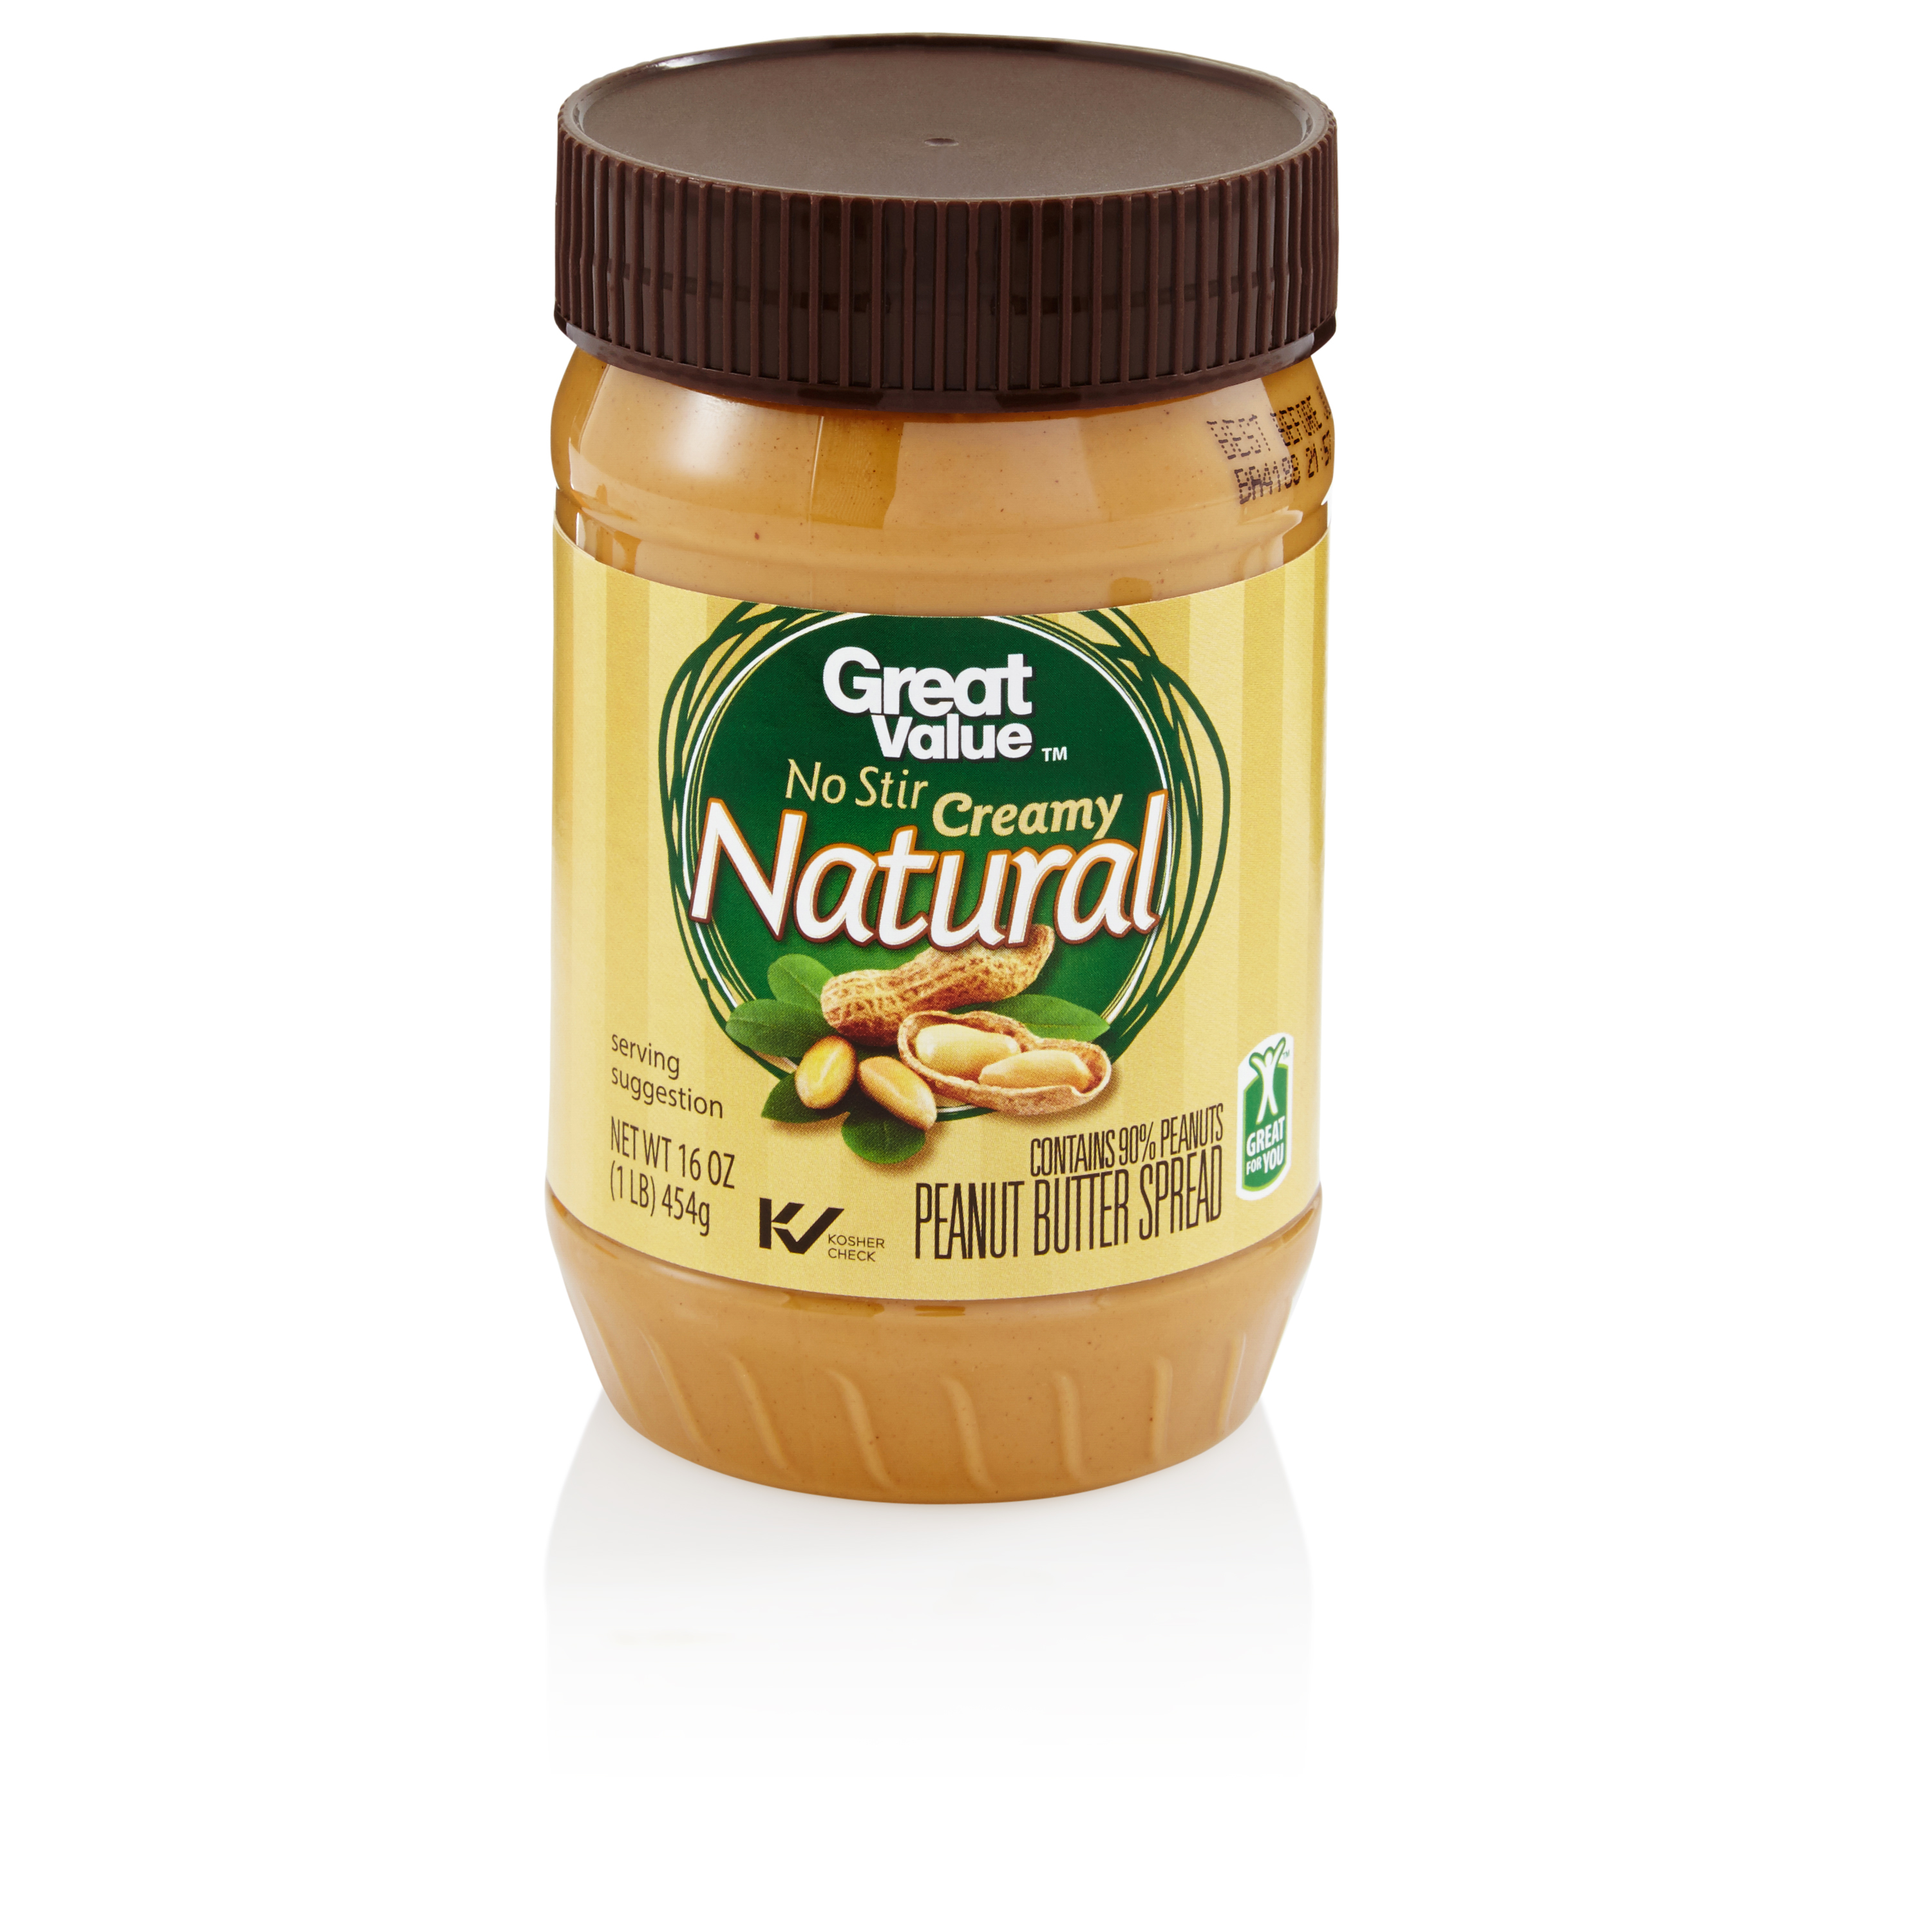 Great Value Natural No Stir Creamy Peanut Butter, 16 ounces